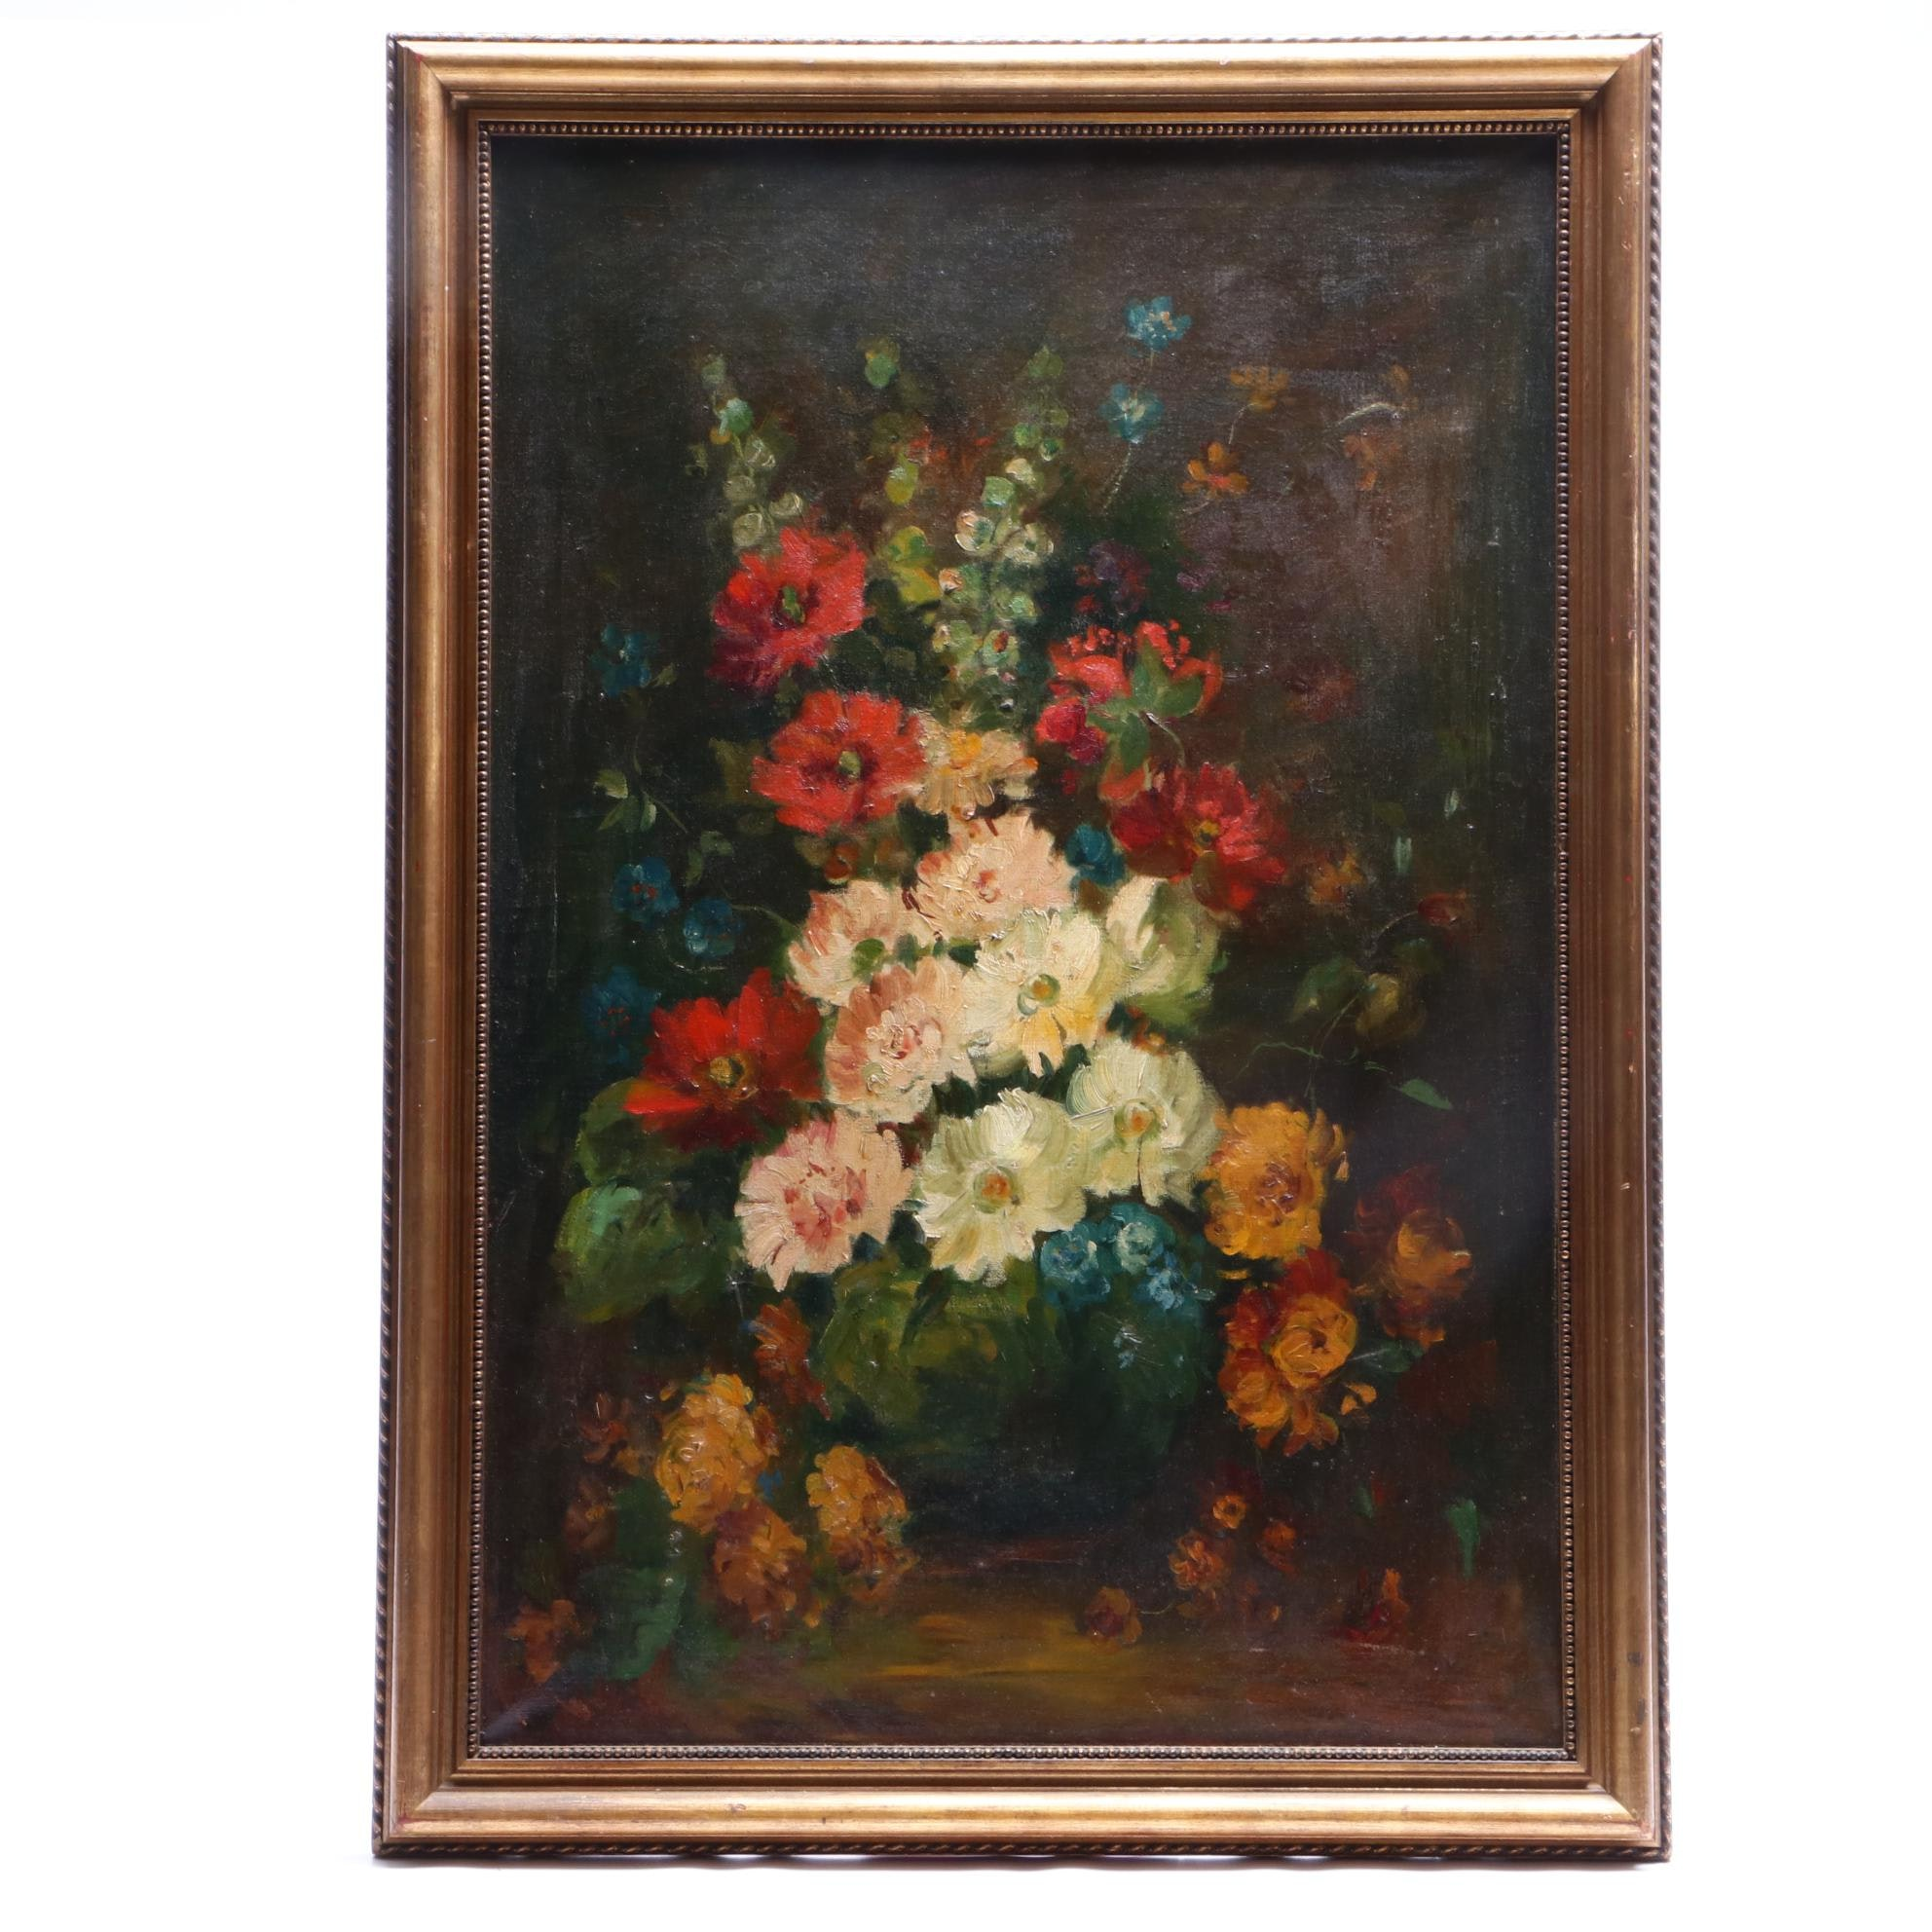 Early 20th-Century Floral Still Life Oil Painting